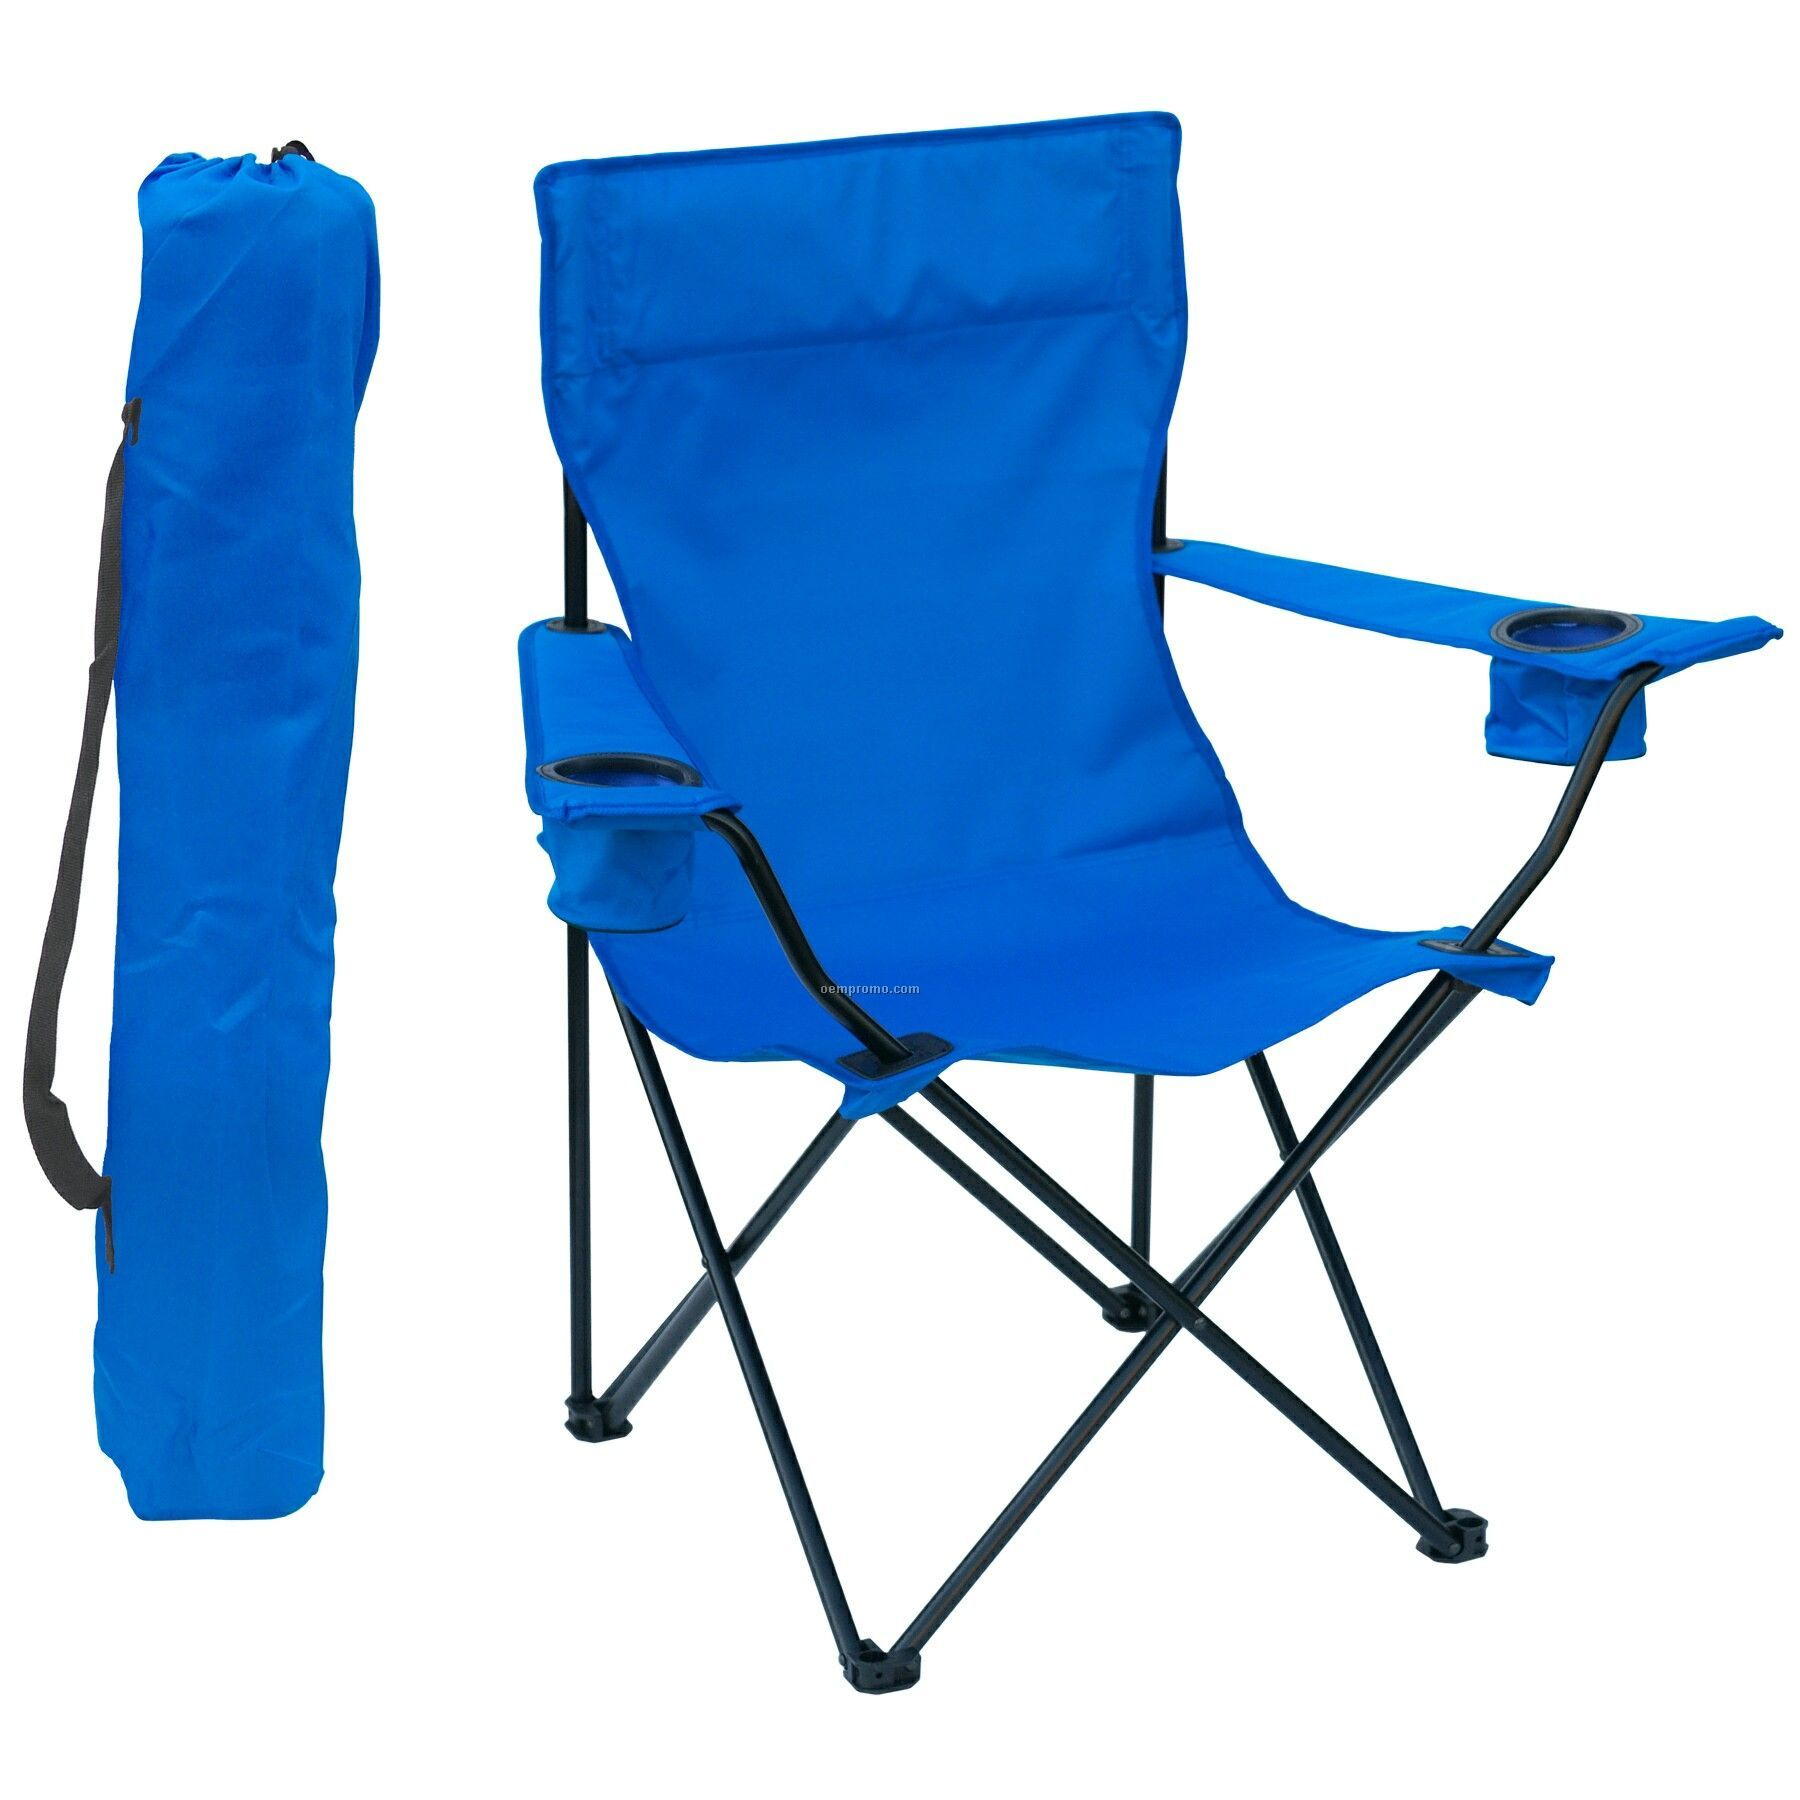 Folding Chair W Arm Rests 2 Cup Holders And Carry Bag China Wholesale Foldin